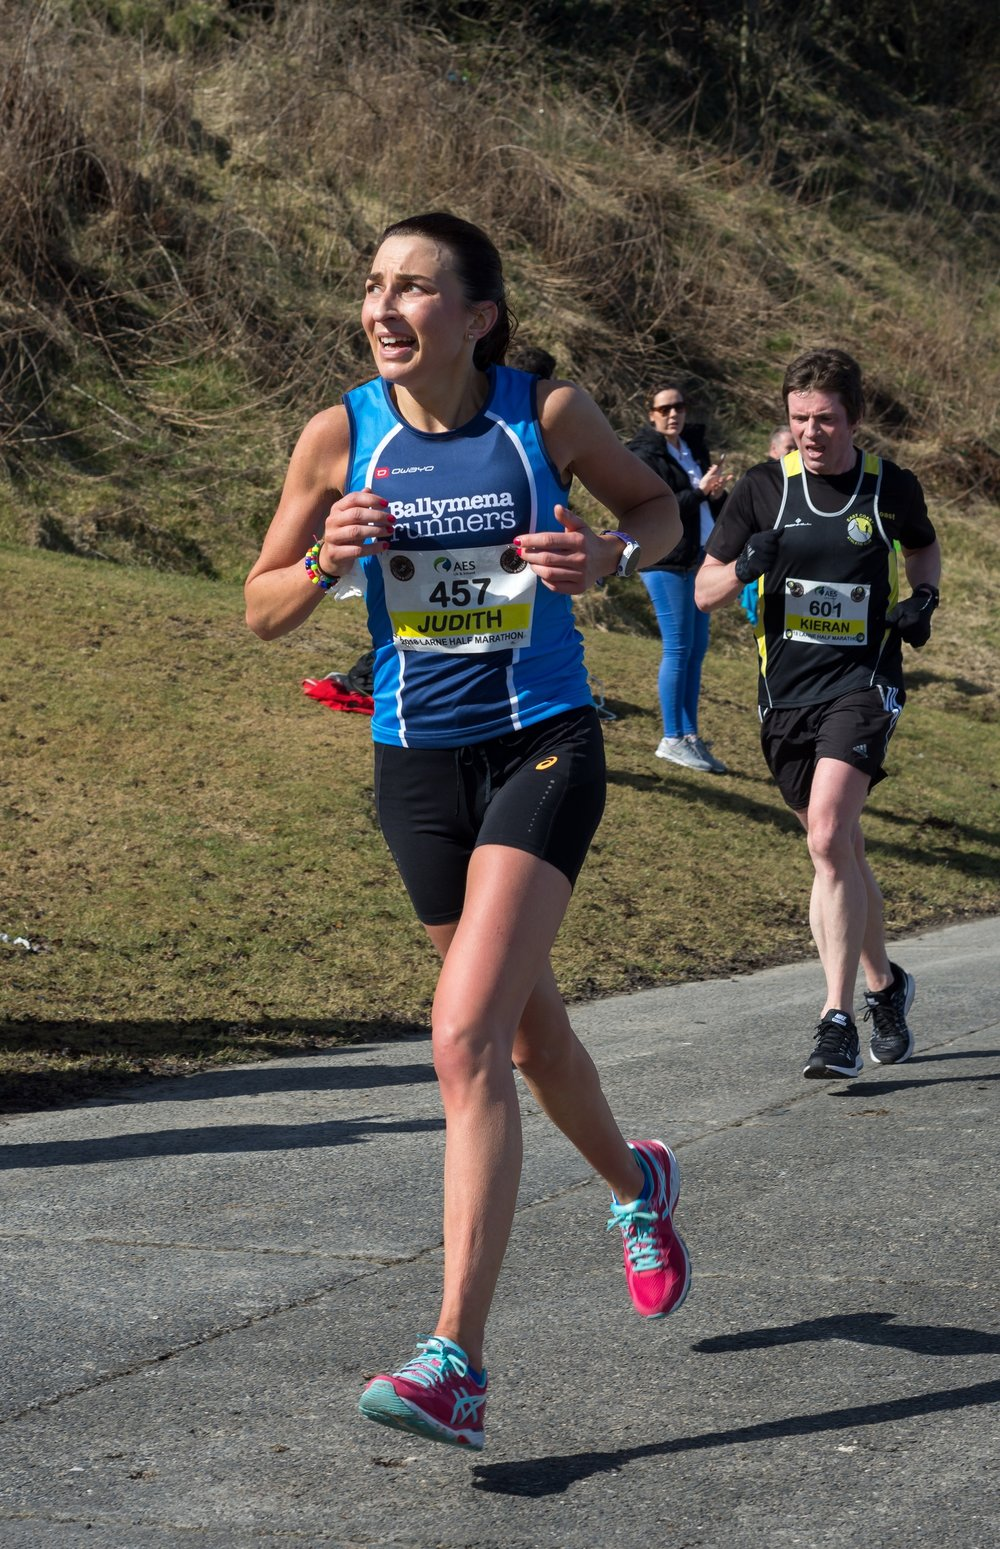 Judith Brown nearing the finish line in Larne